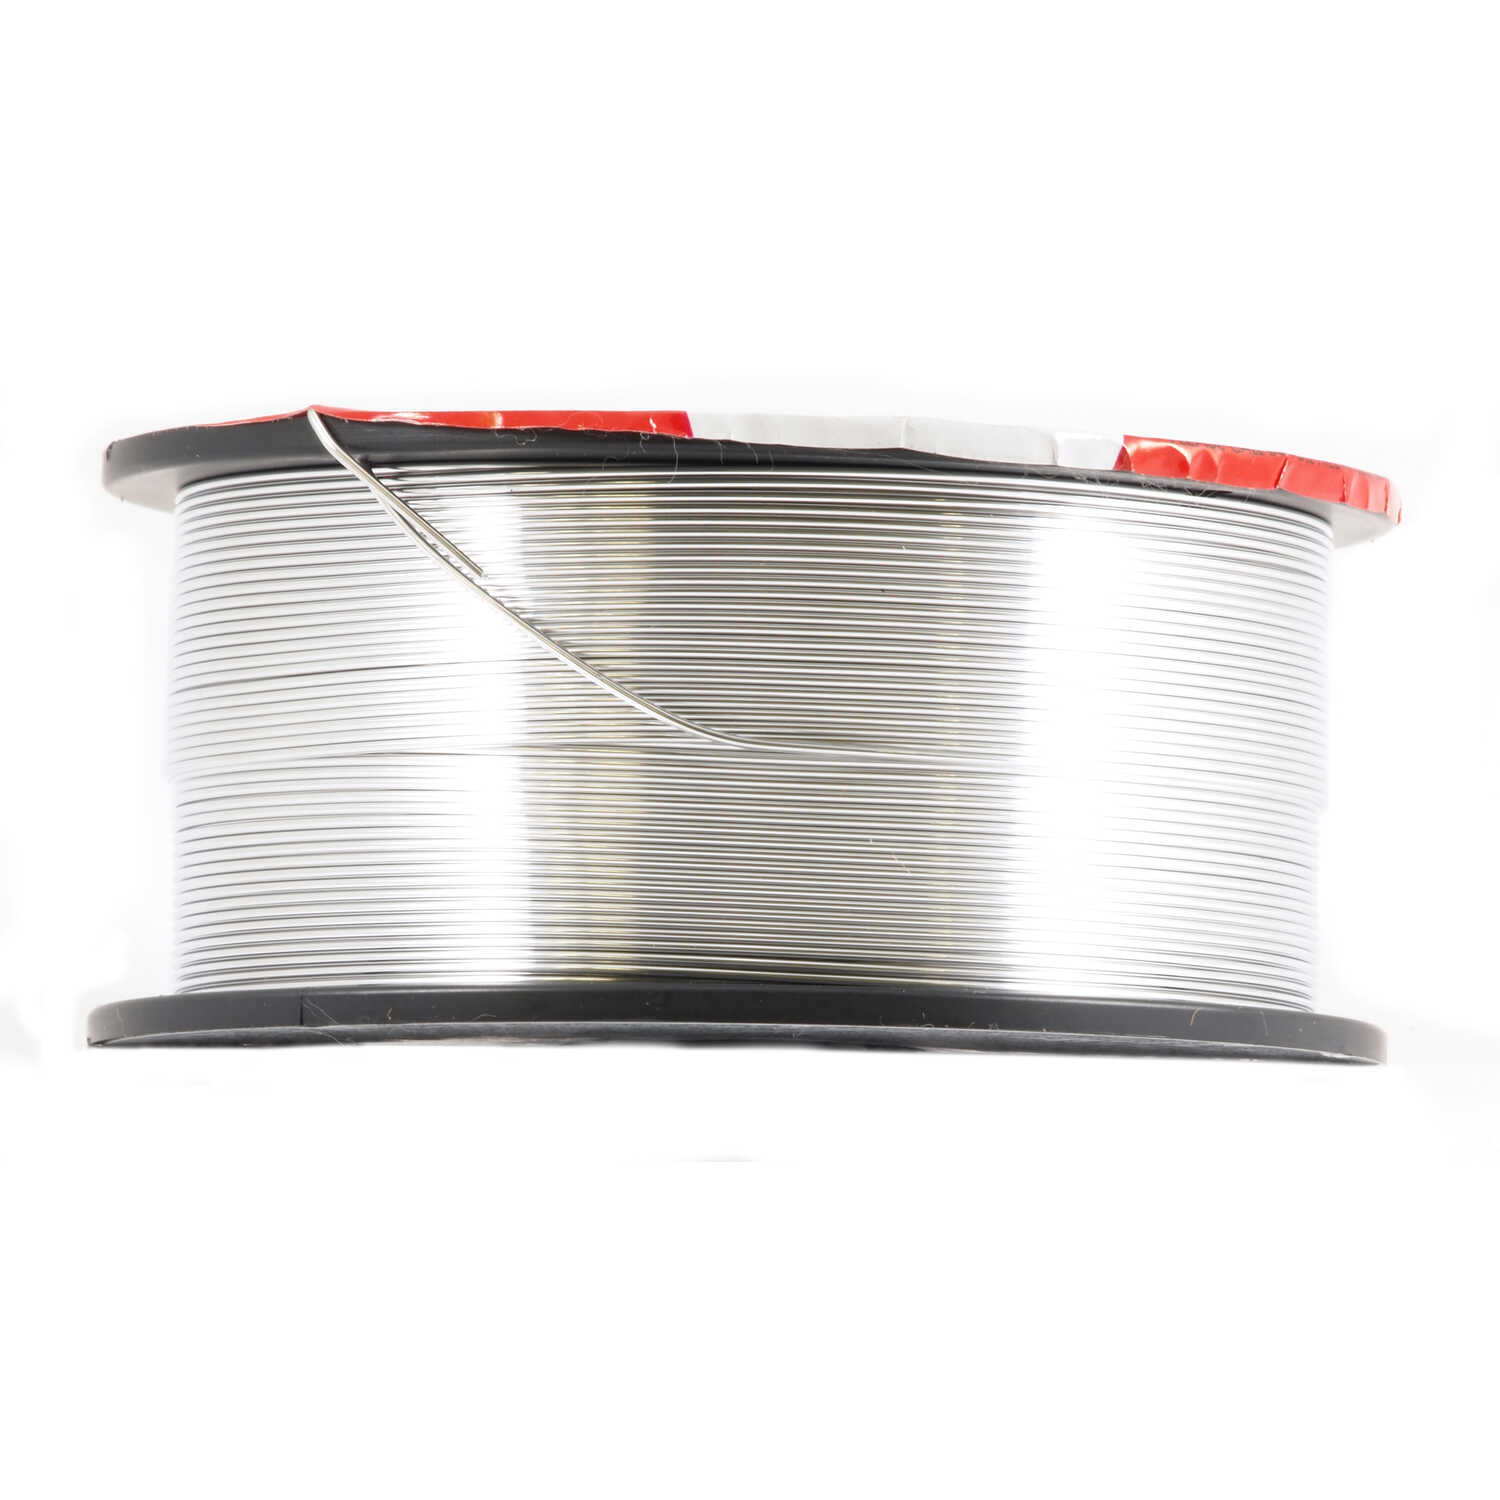 Forney  0.035 in. Aluminum  MIG Welding Wire  33000 psi 1 lb.